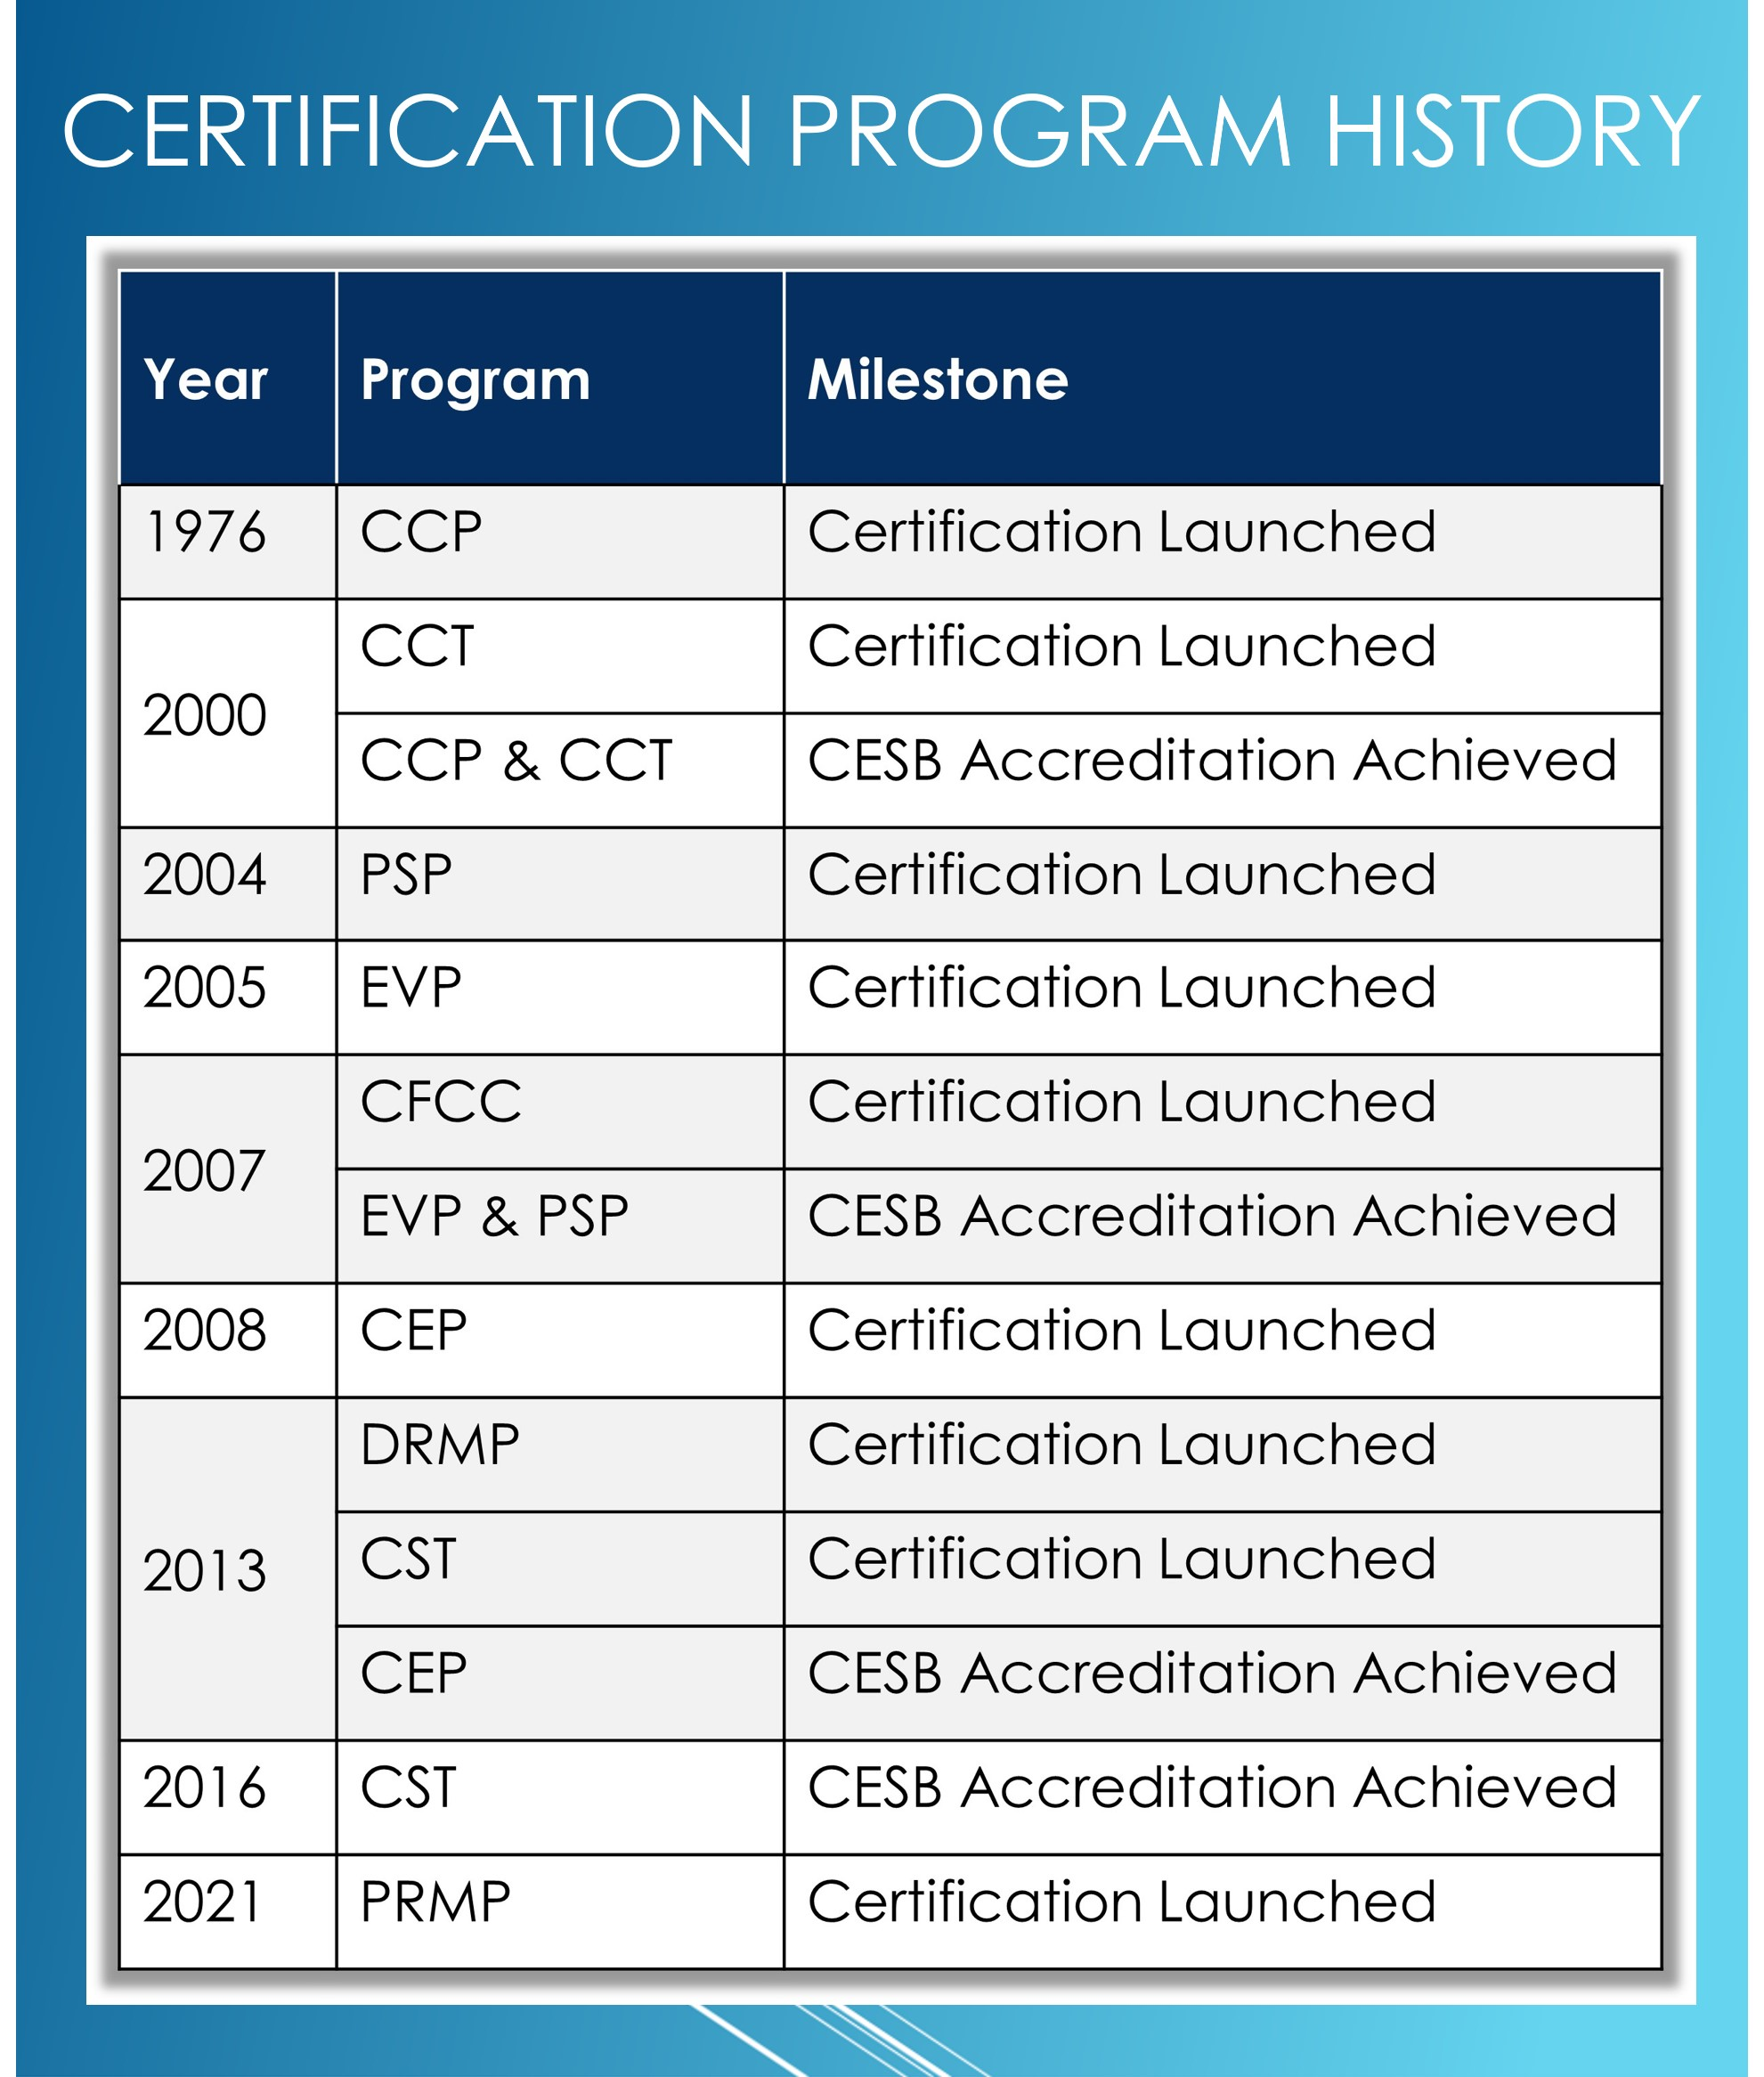 Certification Program History